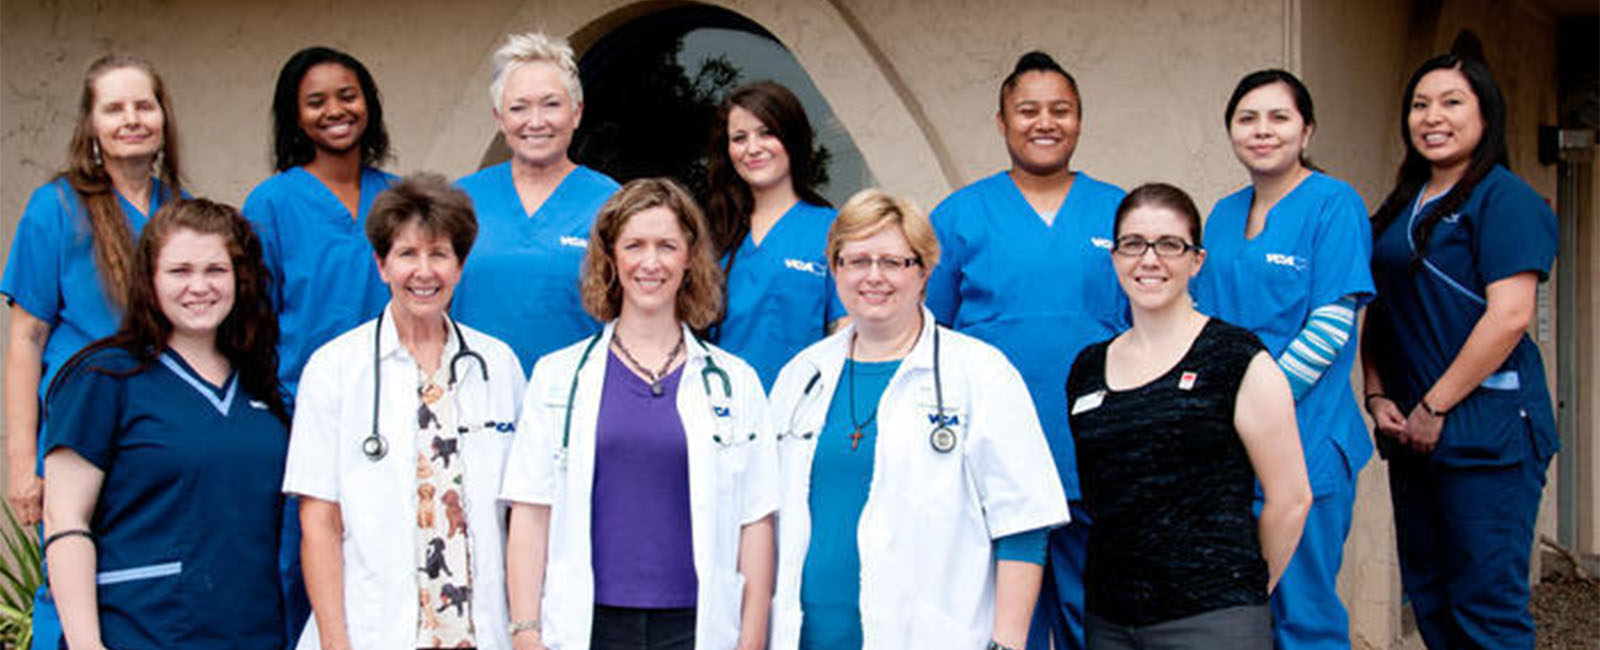 Homepage Team Picture of VCA Phoenix West Animal Hospital